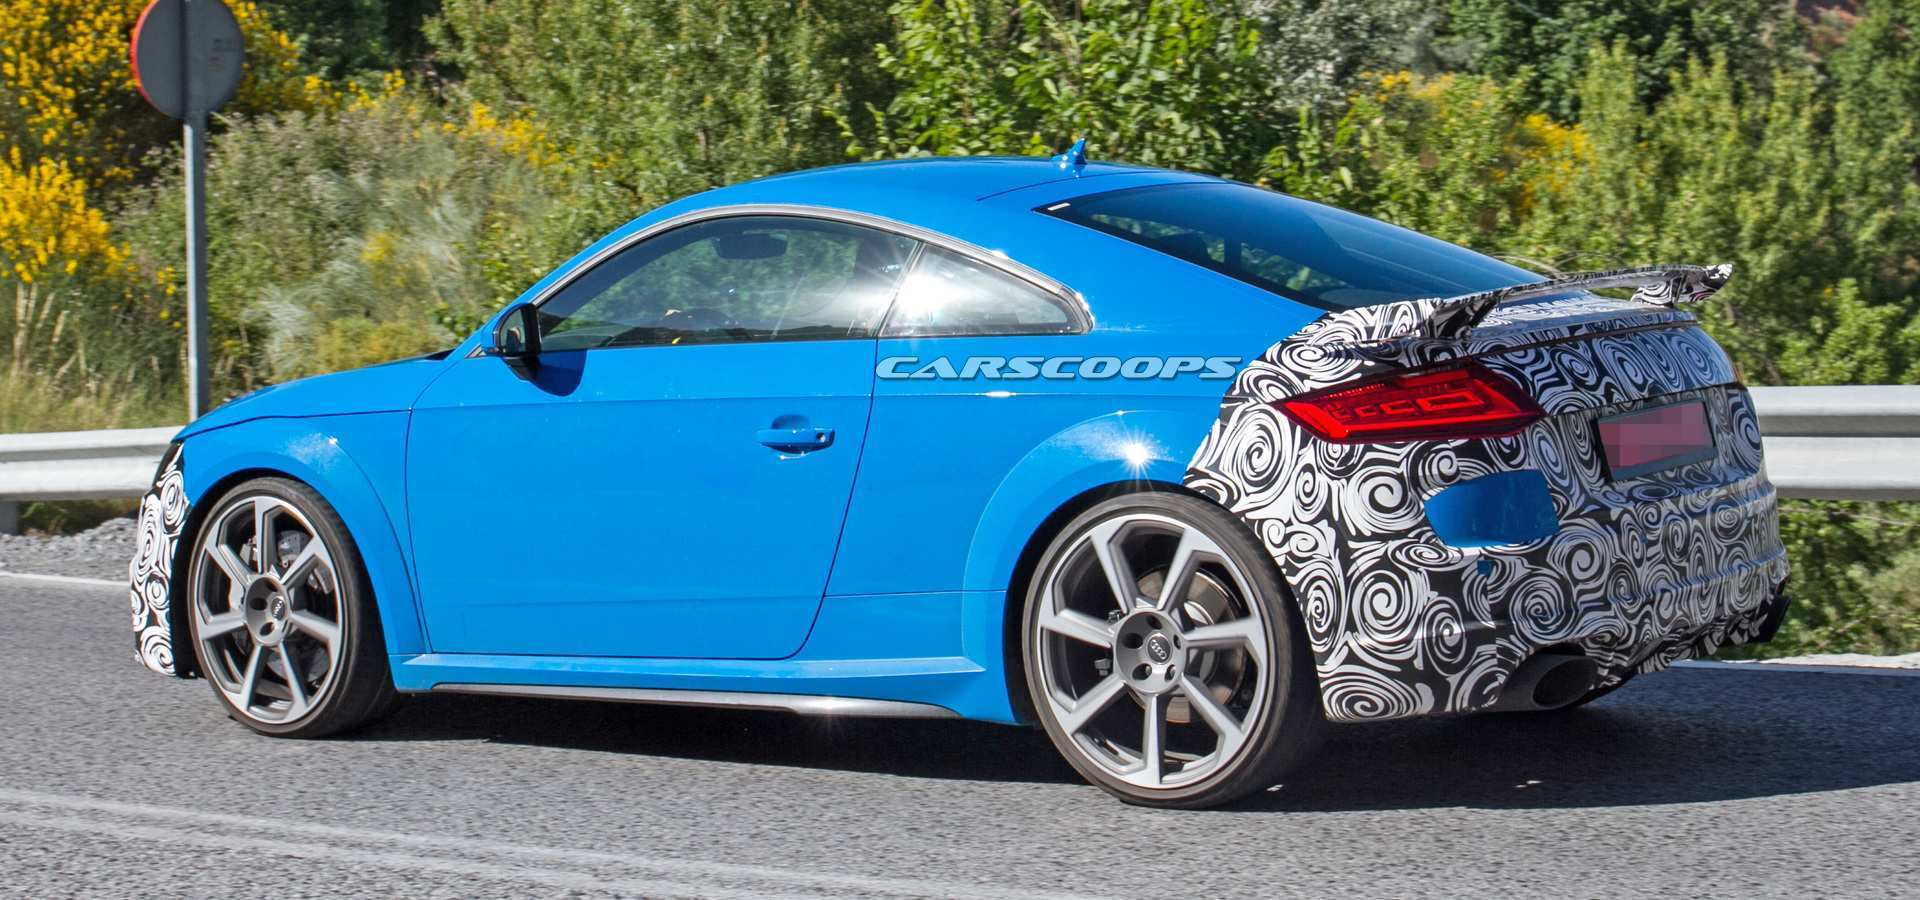 83 All New 2019 Audi Tt Rs Concept